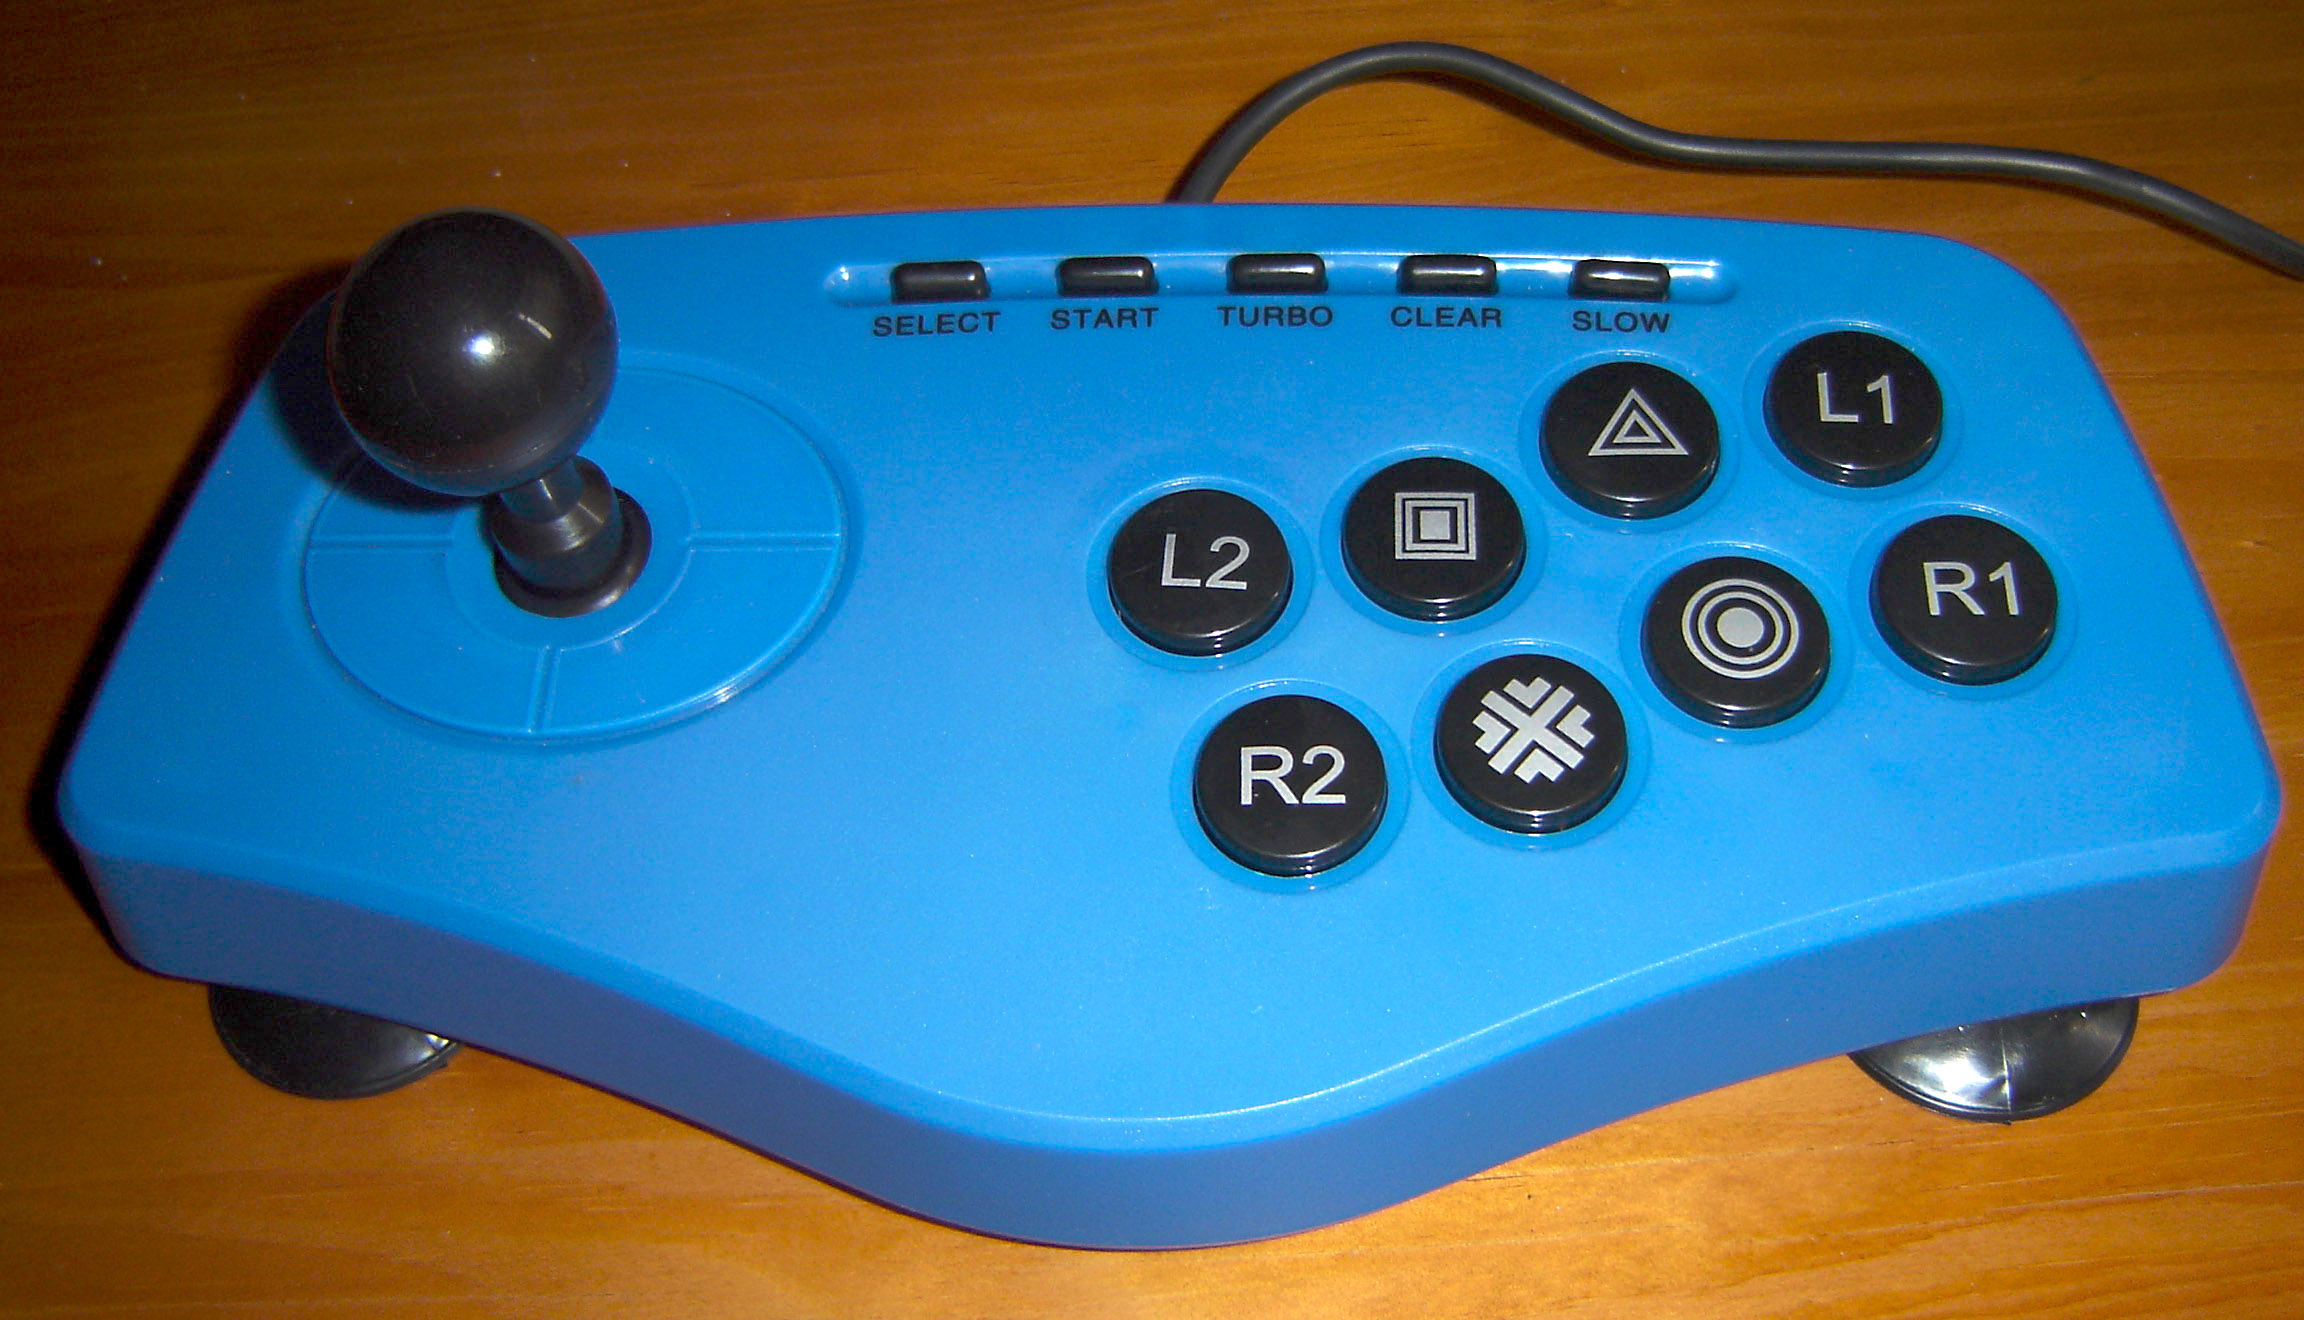 File:Arcade controller.jpg - Wikimedia Commons